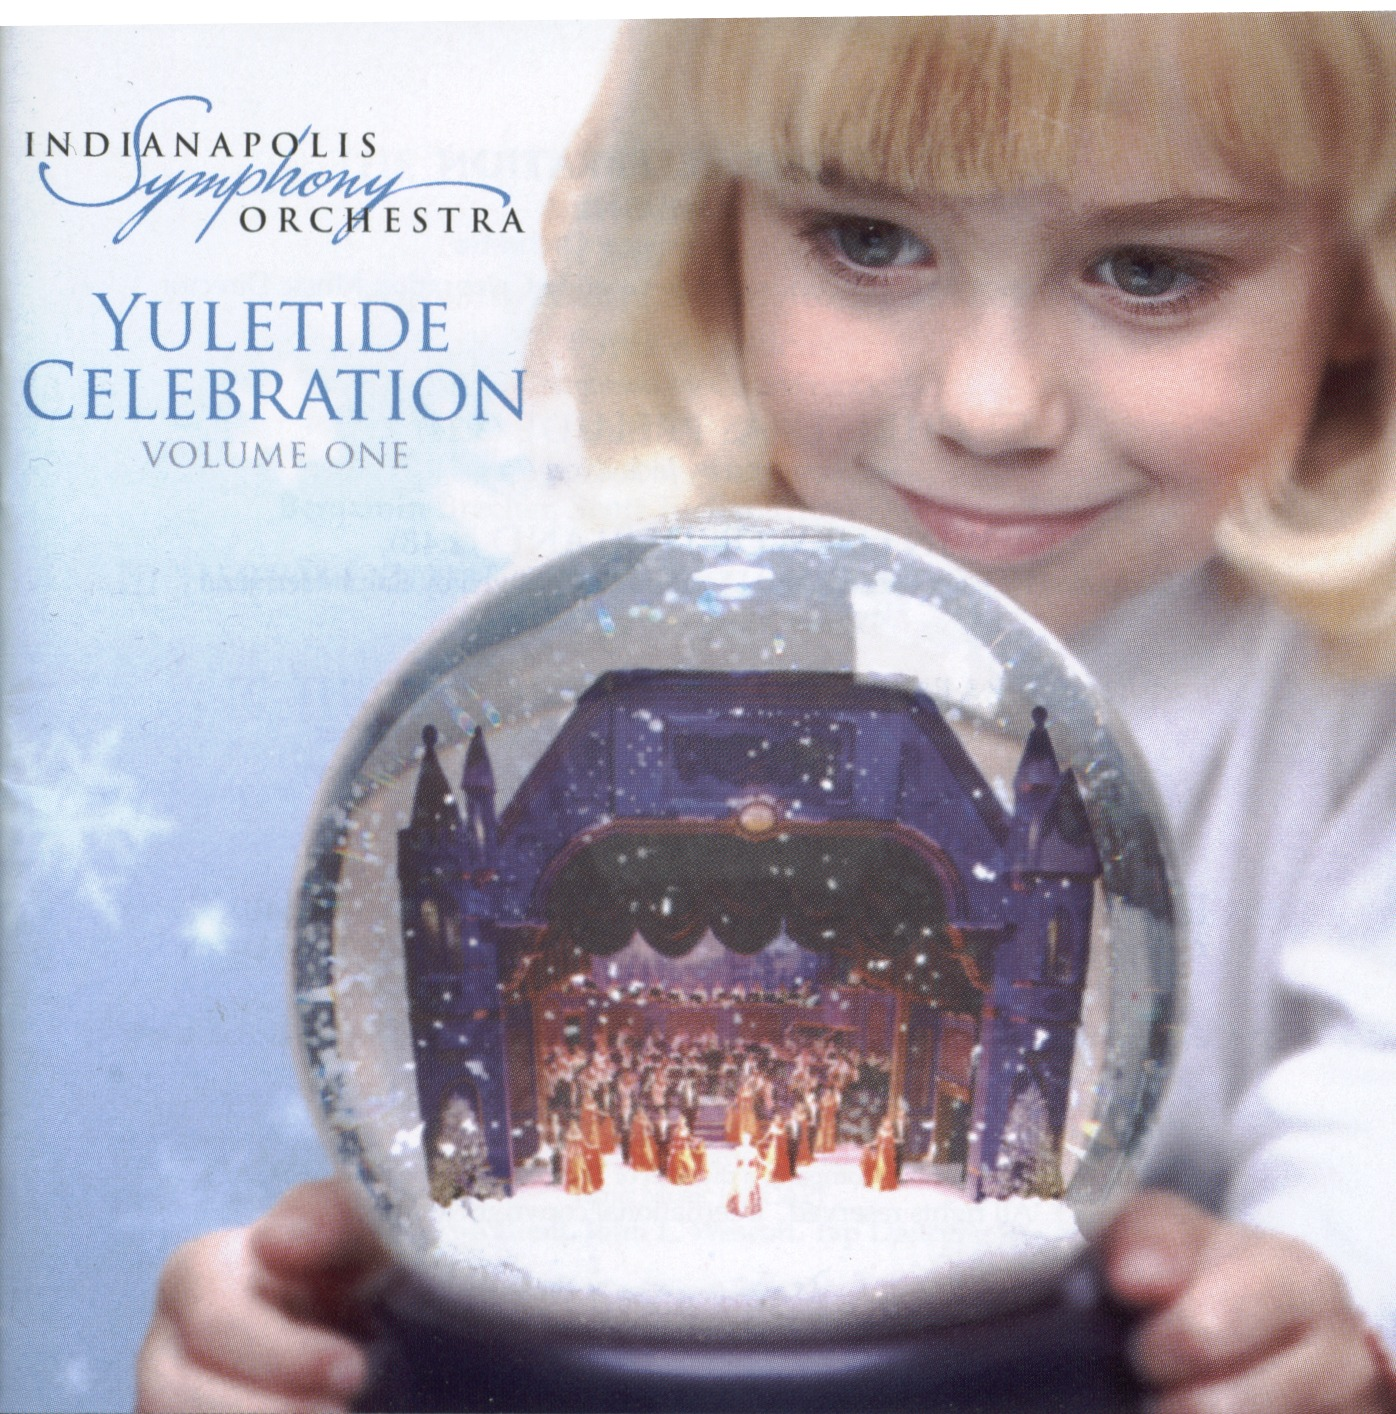 Yuletide Celebration Hilbert Circle Theatre